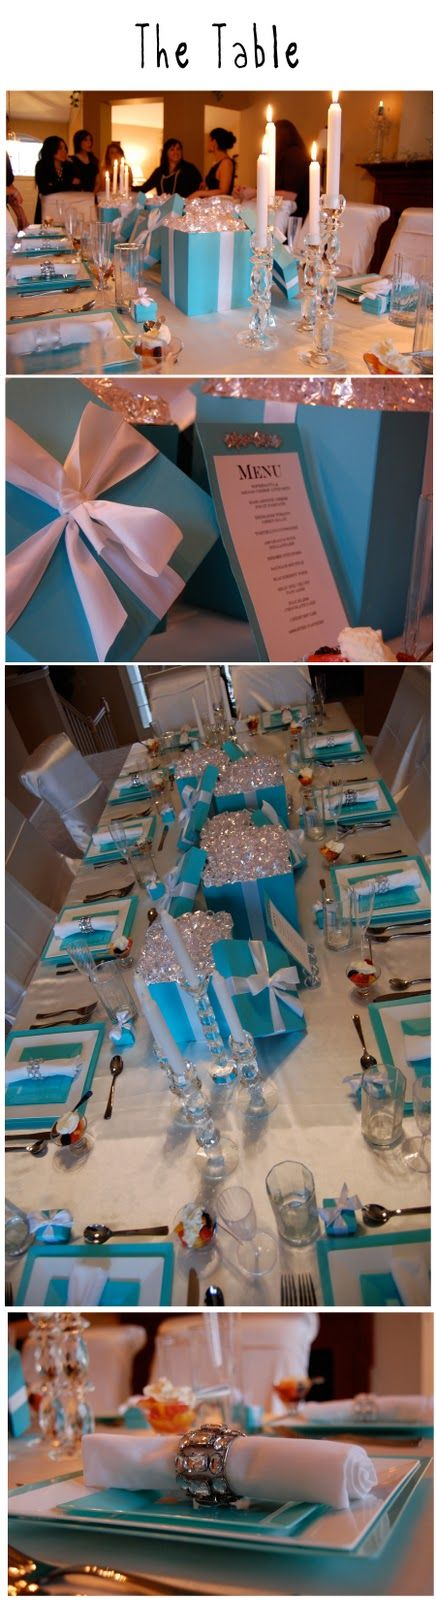 Breakfast @Tiffany's Brunch! Love all of the ideas @ designmuseblog.blogspot.com